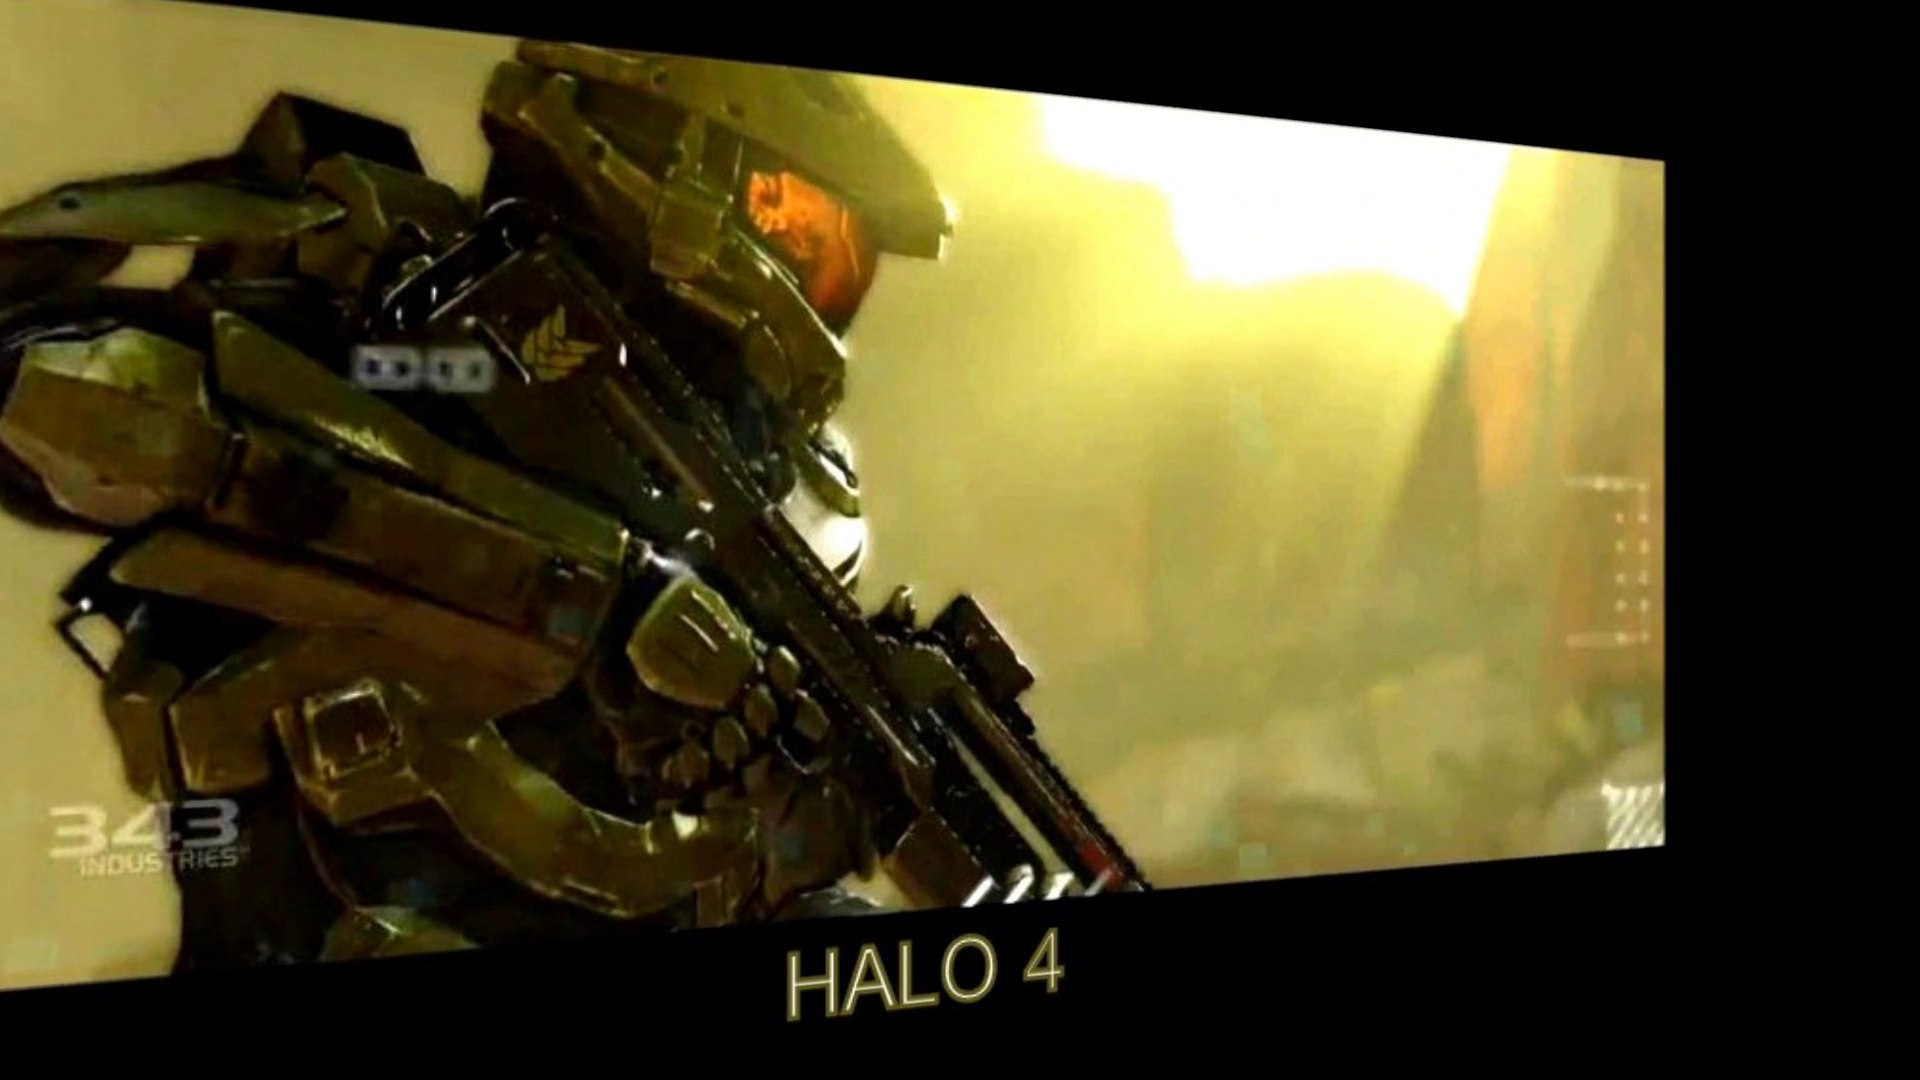 Halo 4 Free Download Very Hot Sci Fi Military Styled Fps Mmo Shooting Game